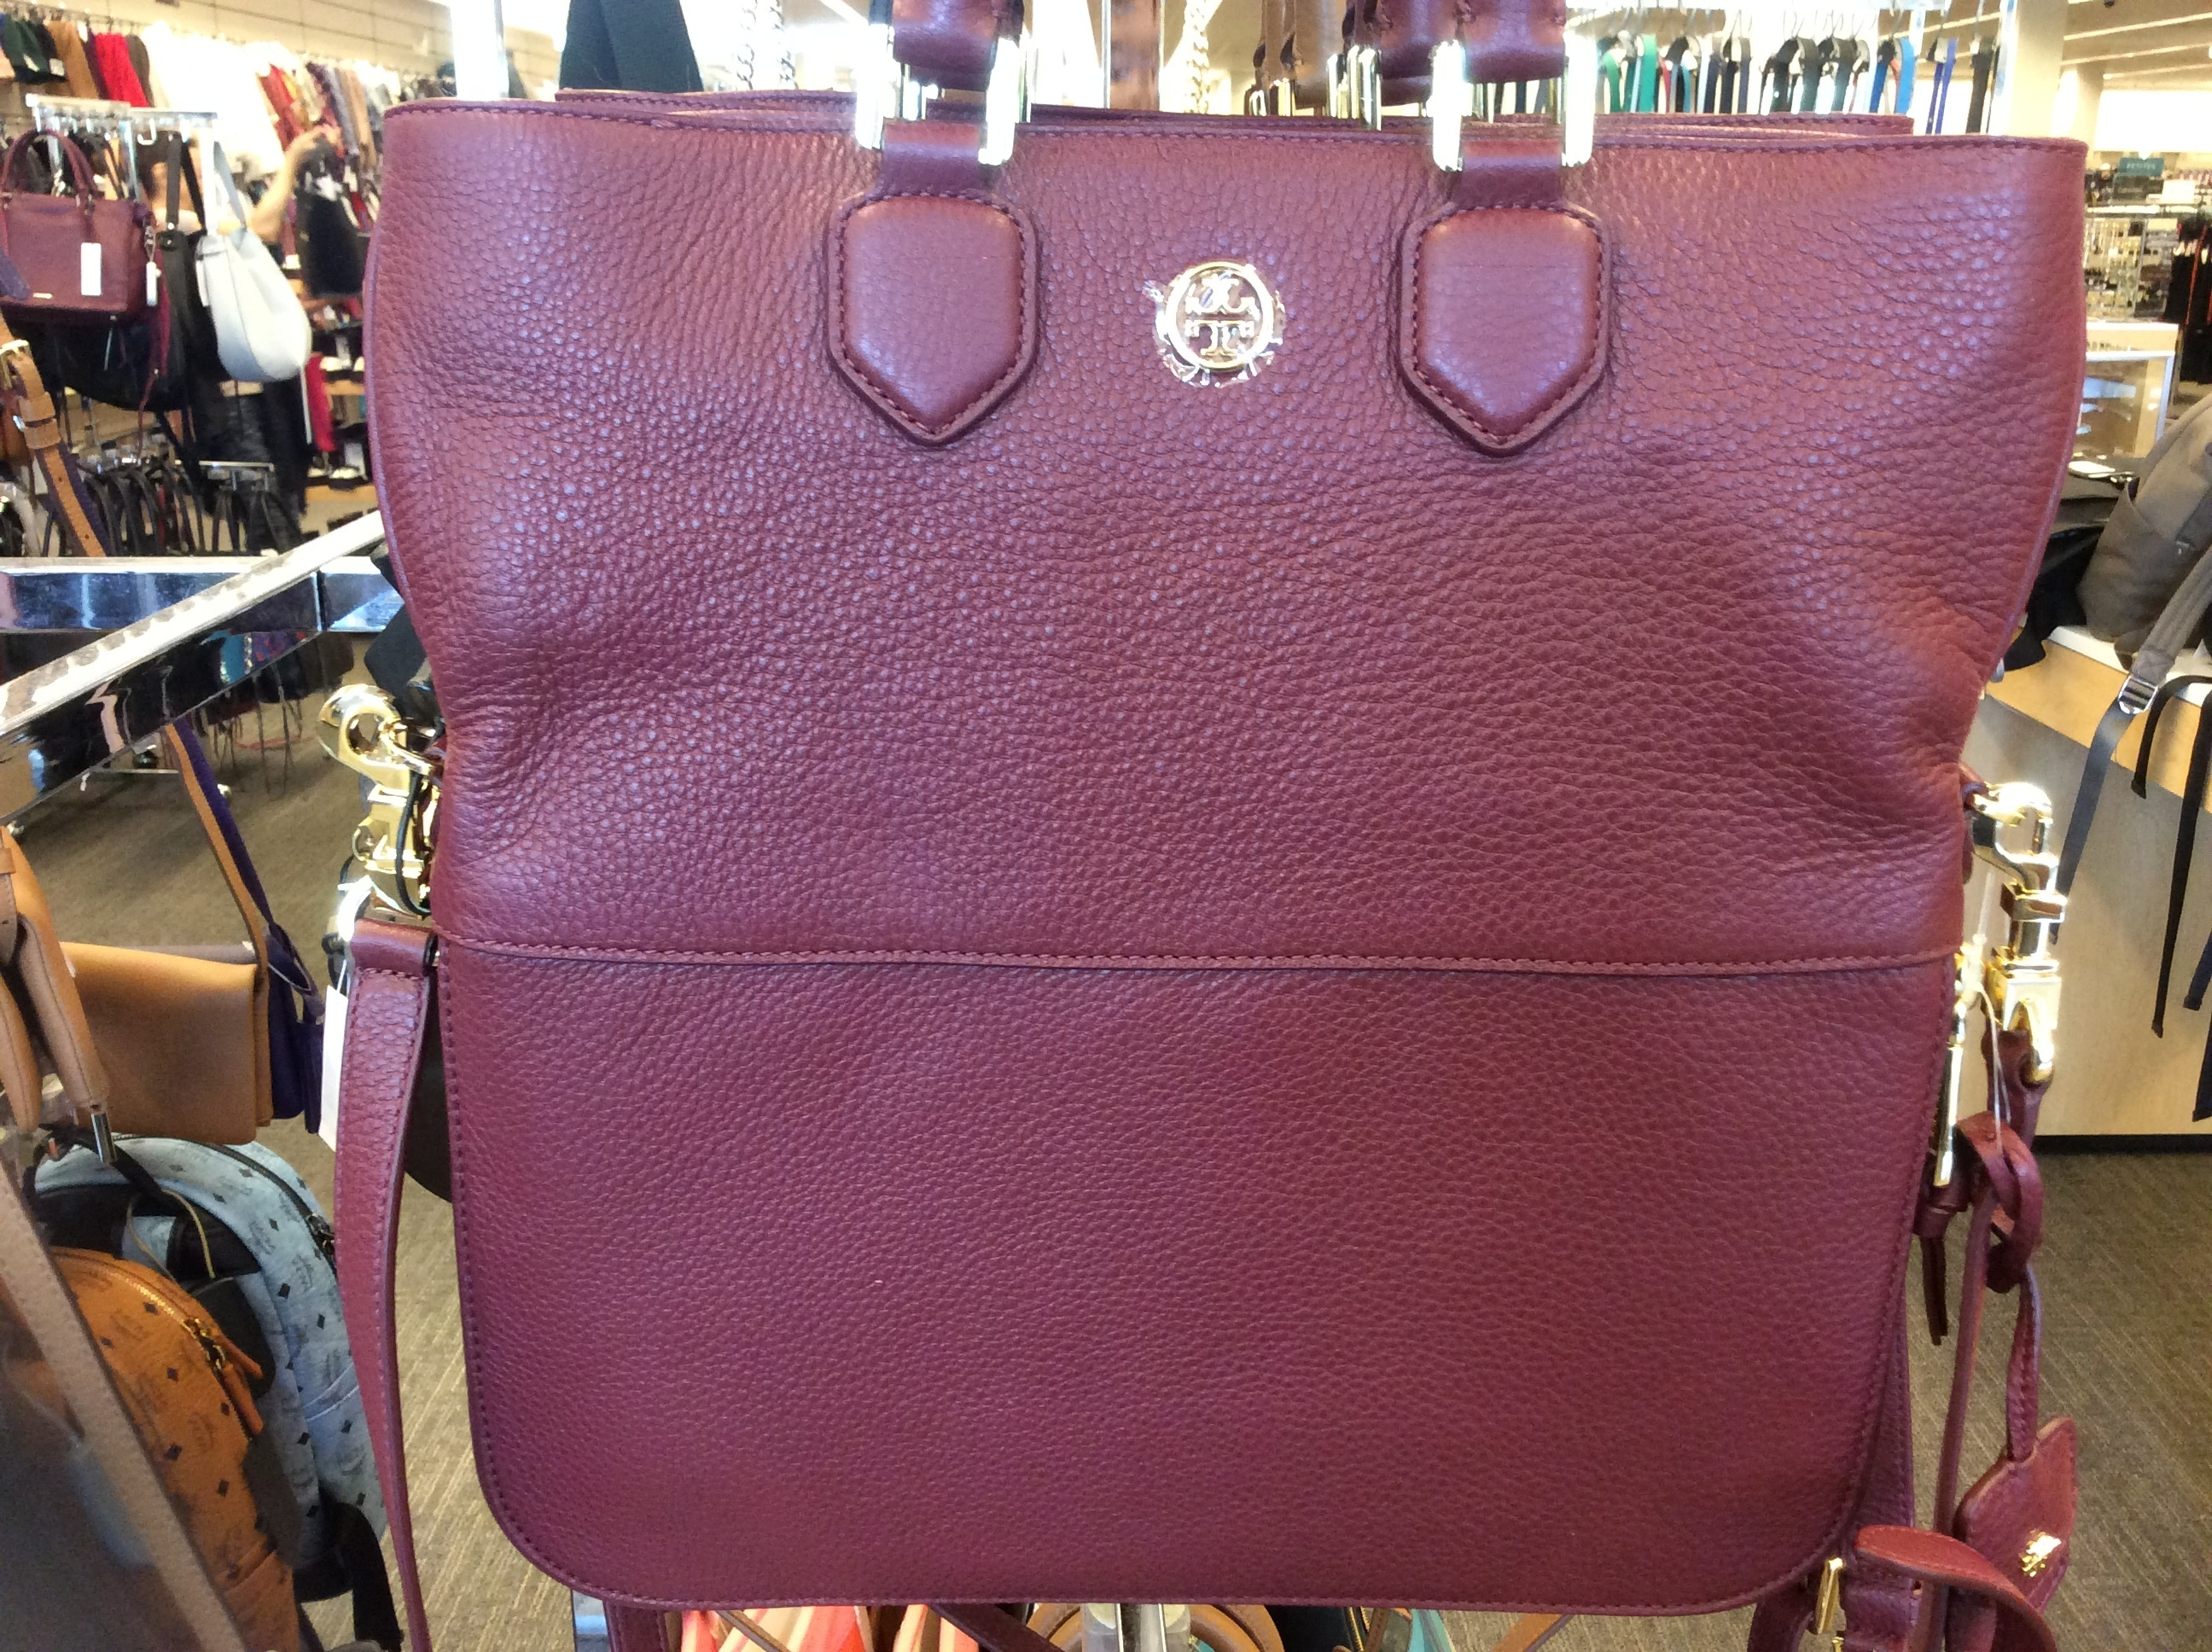 【Tory Burch】2WAY Robinson Pebbled Fold-over Messenger(正規